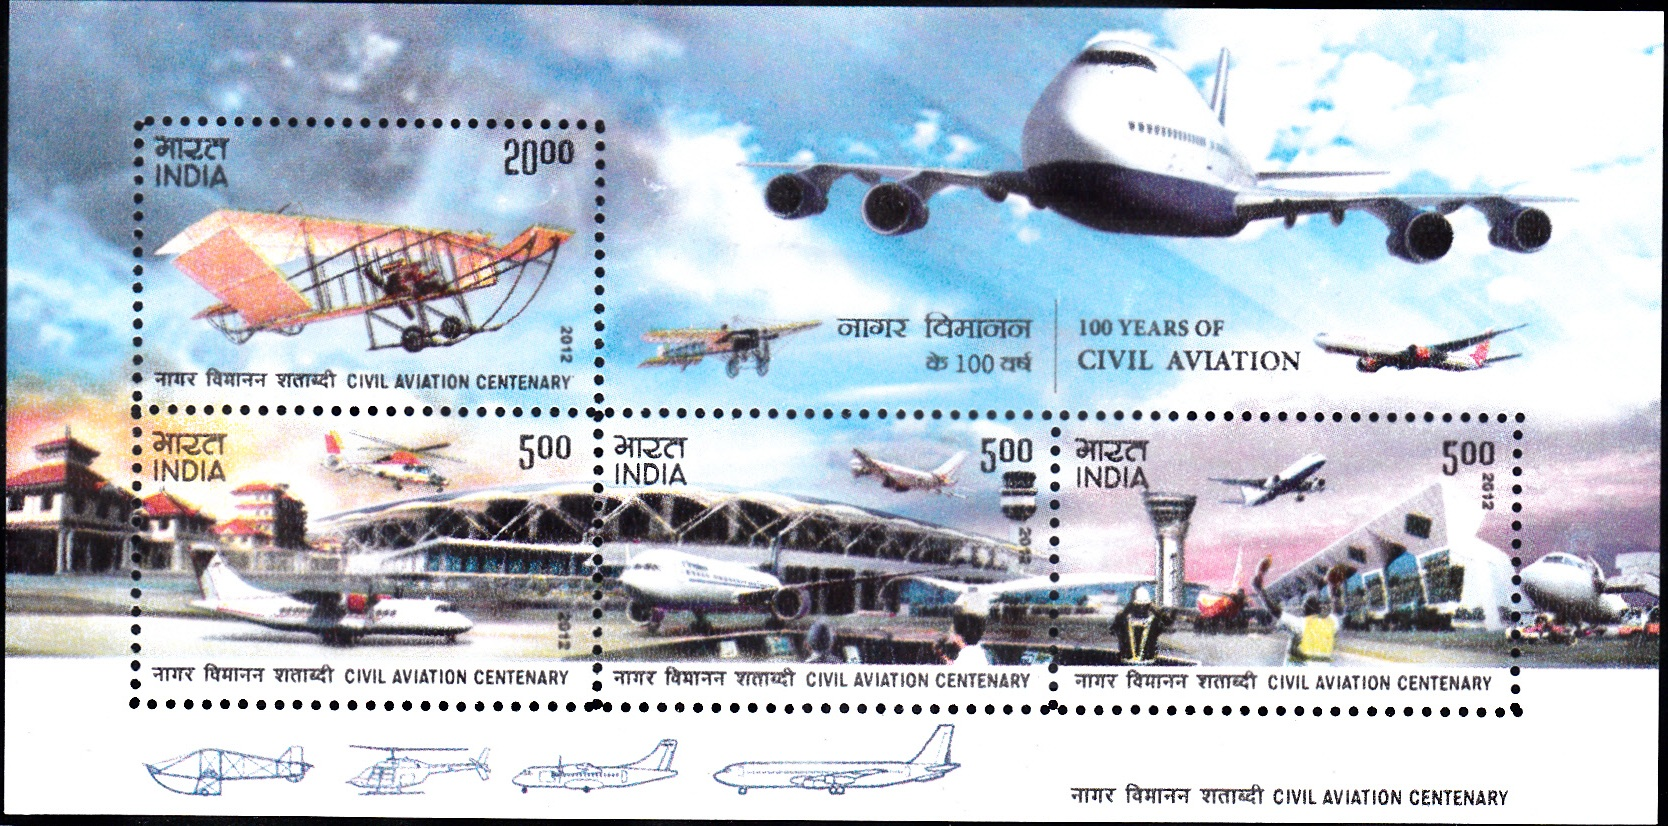 History of Indian Civil Aviation Industry